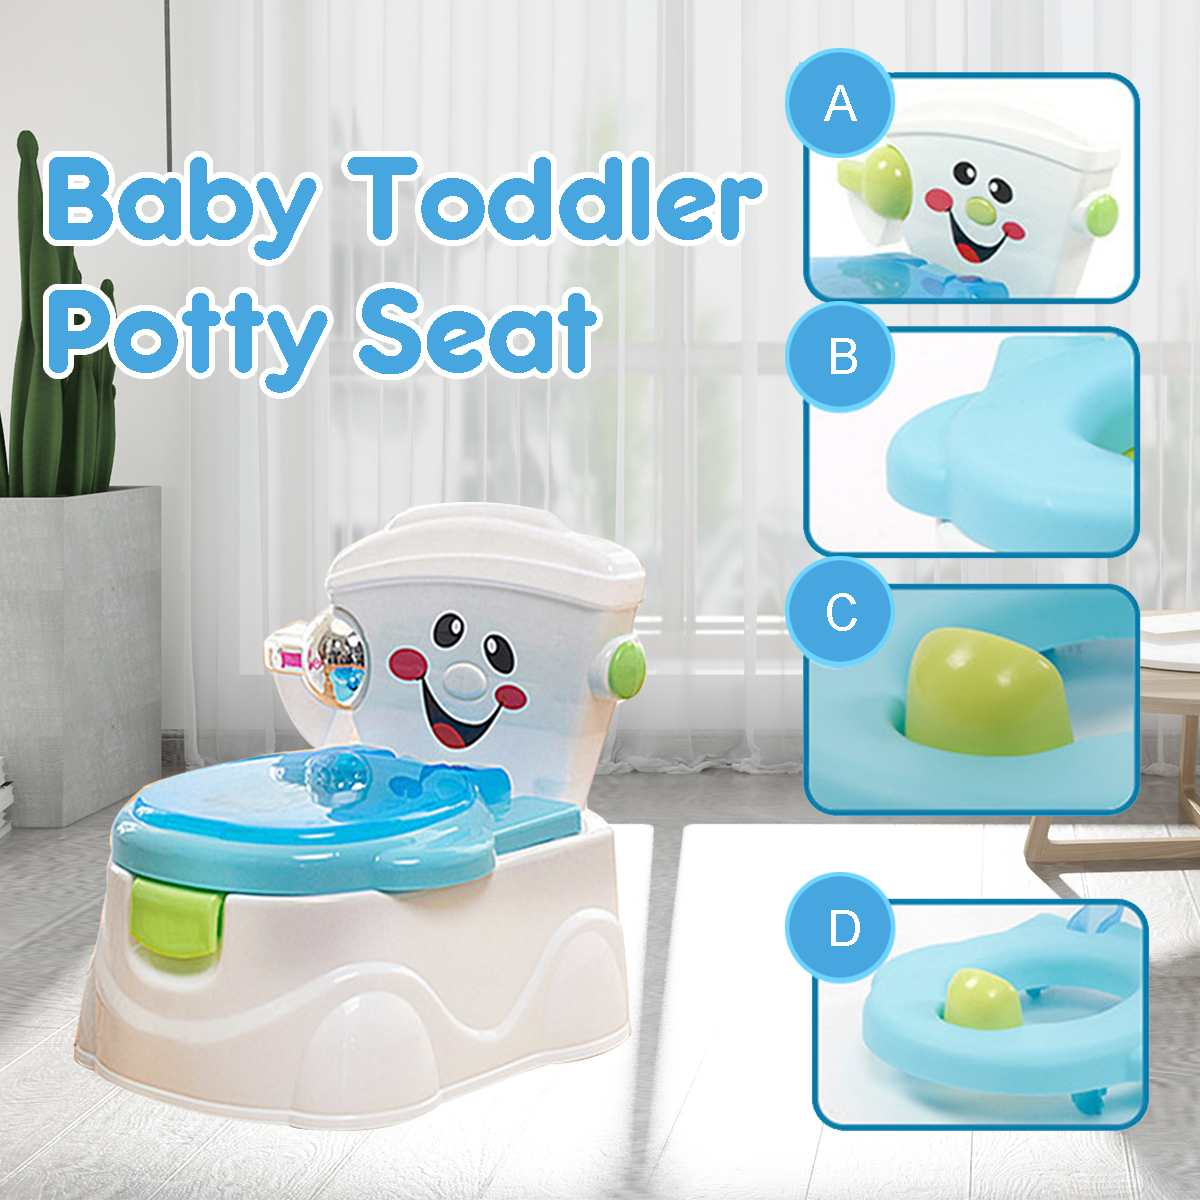 Portable Baby Pot Toilet Seat Pot For Kids Potty Training Seat Children's Potty Baby Toilet Multi-function Training Potty Toilet